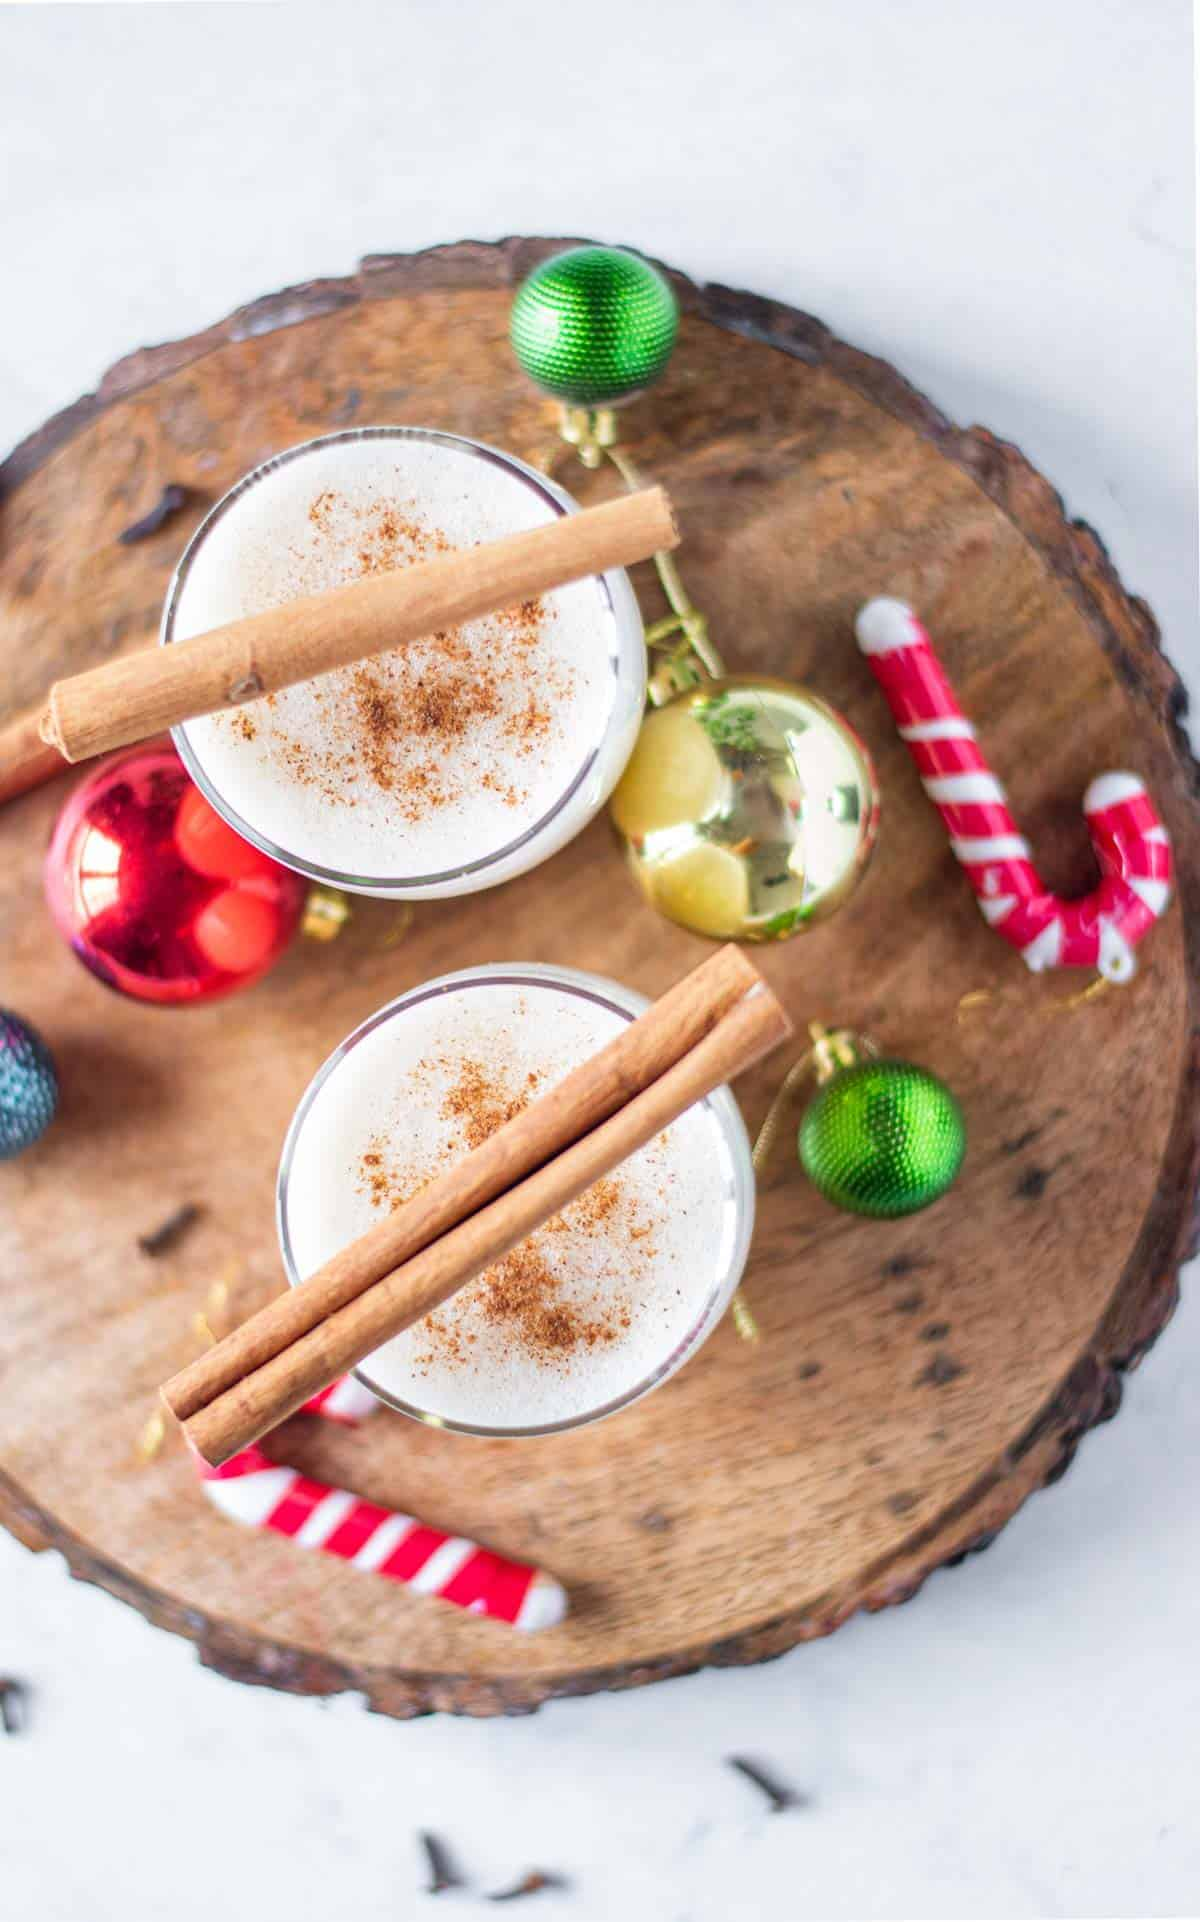 Overhead view of two festive cocktails garnished with cinnamon sticks.